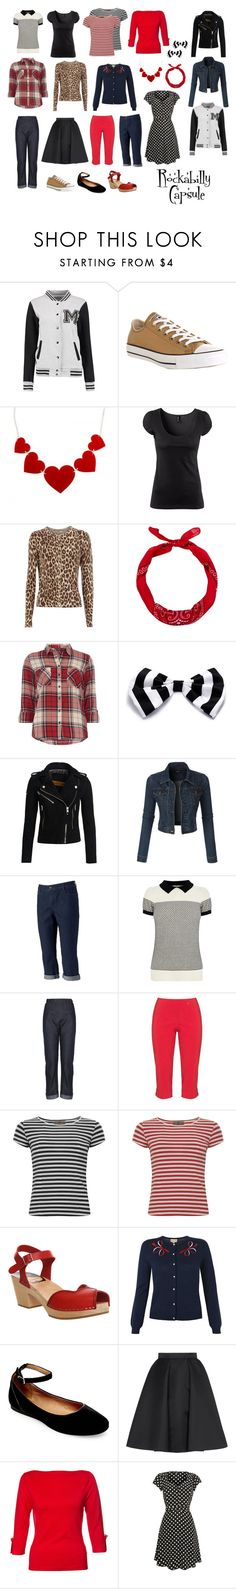 Rockabilly Capsule by christina-sparkle on Polyvore featuring Dorothy Perkins, Oasis, H&M, LE3NO, Superdry, Giles, Croft & Barrow, Swedish Hasbeens, Steve Madden and Converse